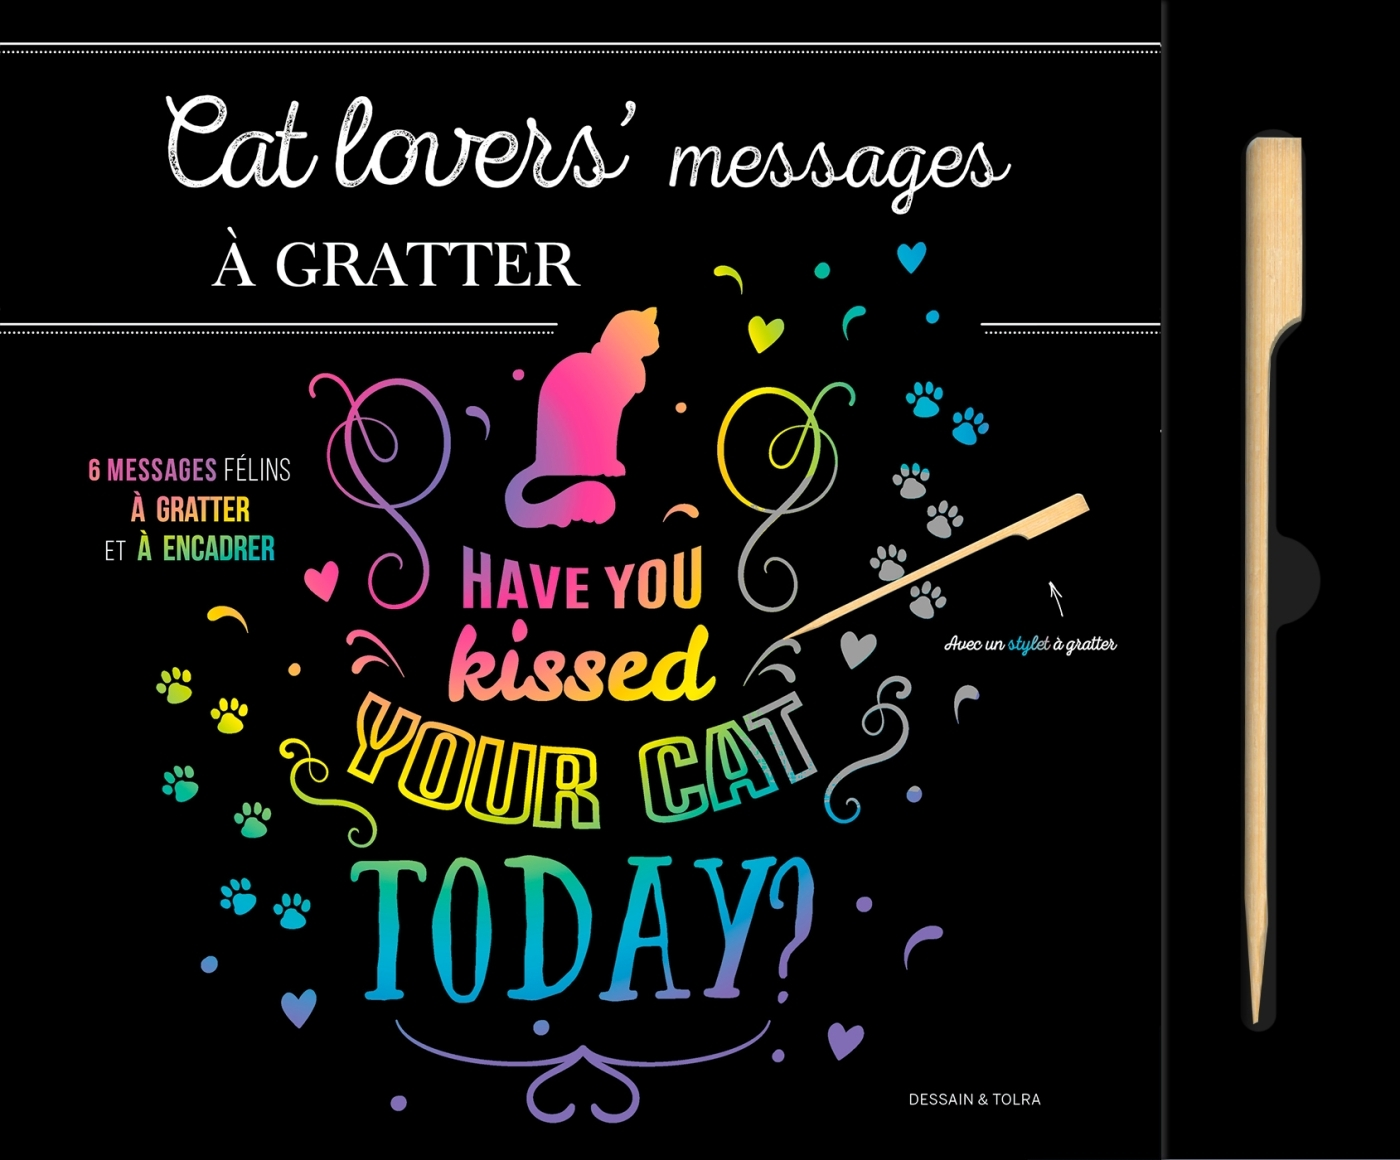 CAT LOVERS' MESSAGES A GRATTER